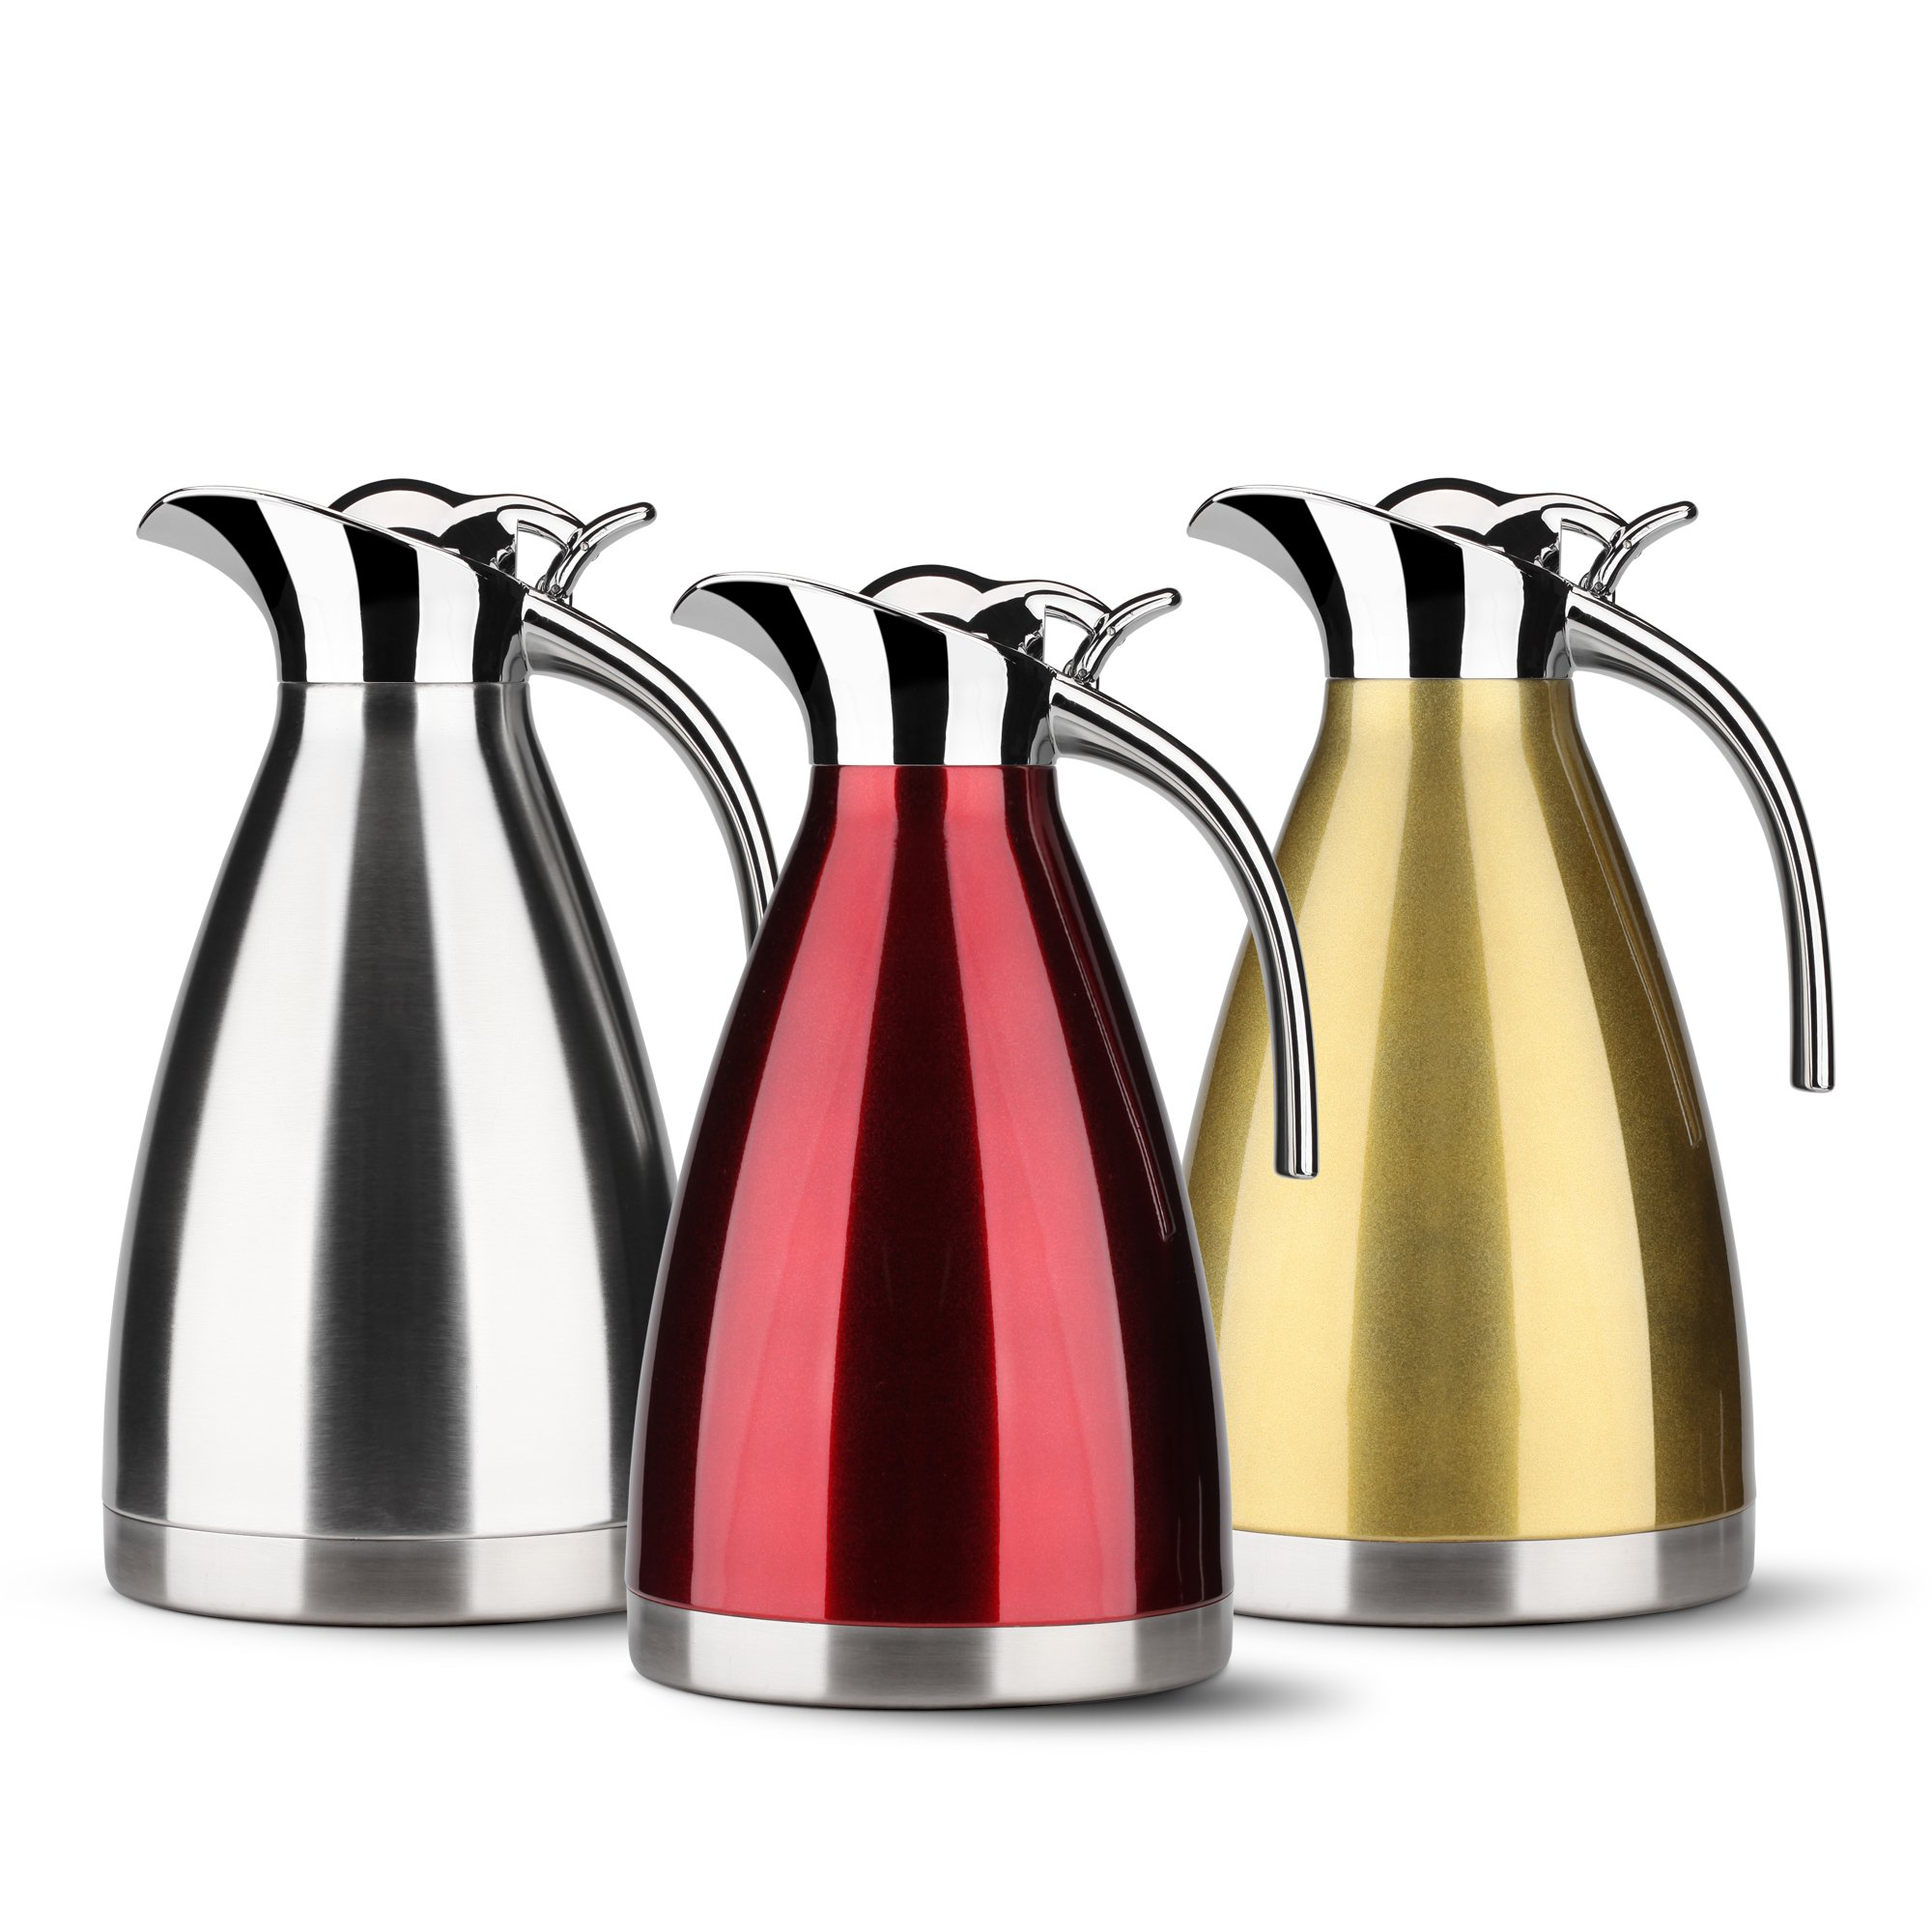 HOMKO Insulated Coffee Carafe - 68 oz Stainless Steel Thermal Carafe Coffee/12 cup Thermal Pitcher/12 Hour Heat Retention (Red)